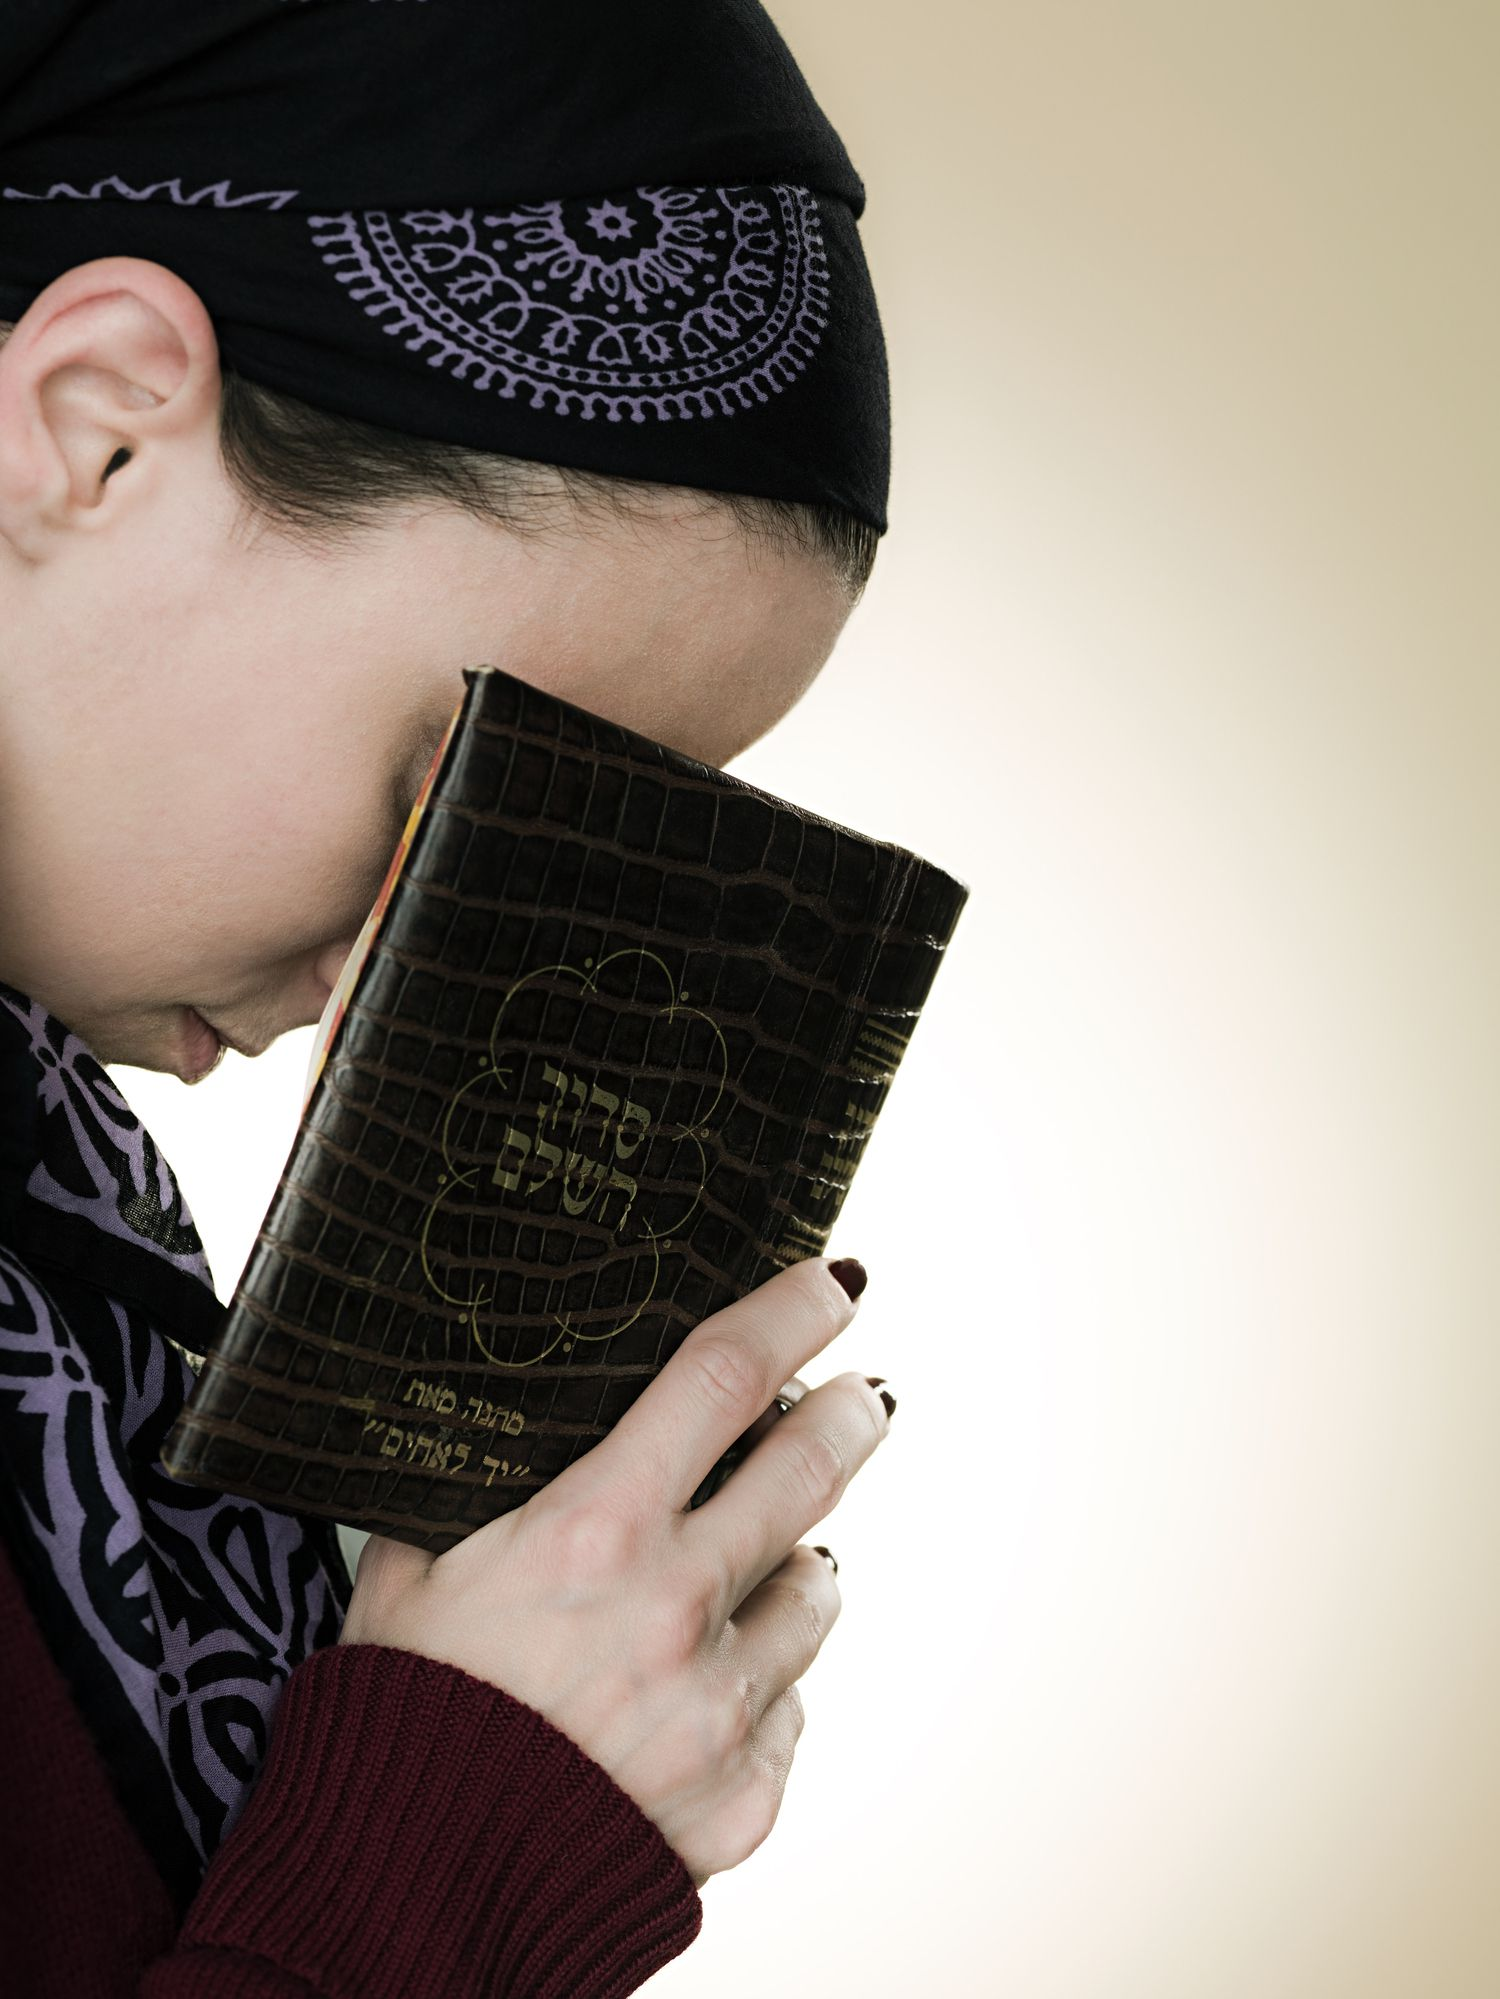 pray jewish girl personals Yet it wasn't until a few years later that i learned how to connect to the formal jewish prayers staying over at a friend's house for shabbat, i was completely embarrassed when she handed.